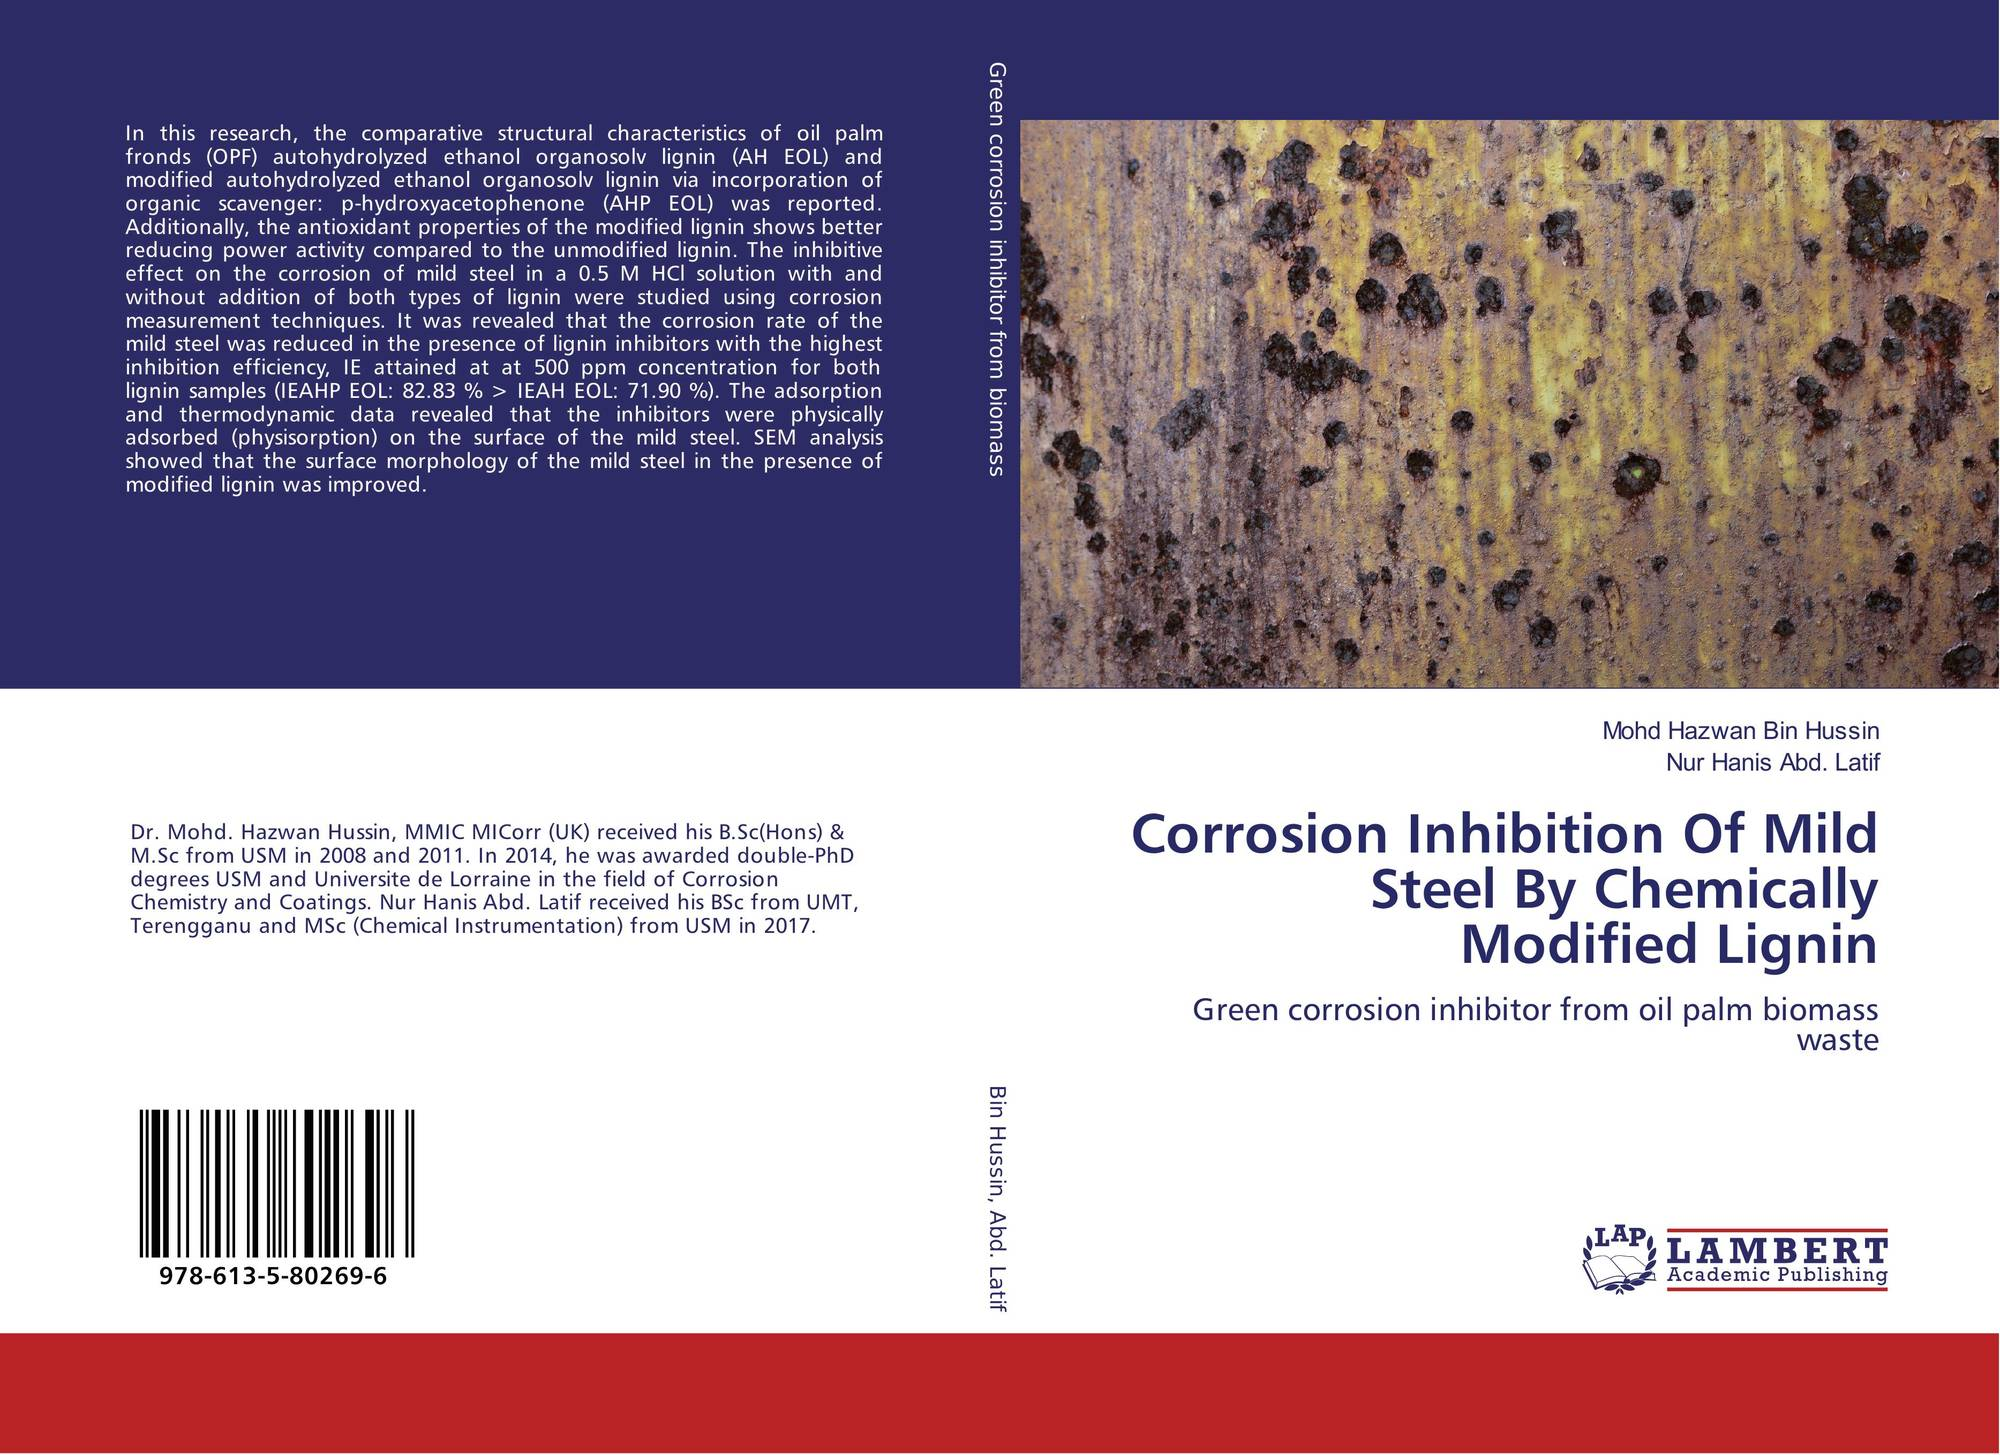 Corrosion Inhibition Of Mild Steel By Chemically Modified Lignin